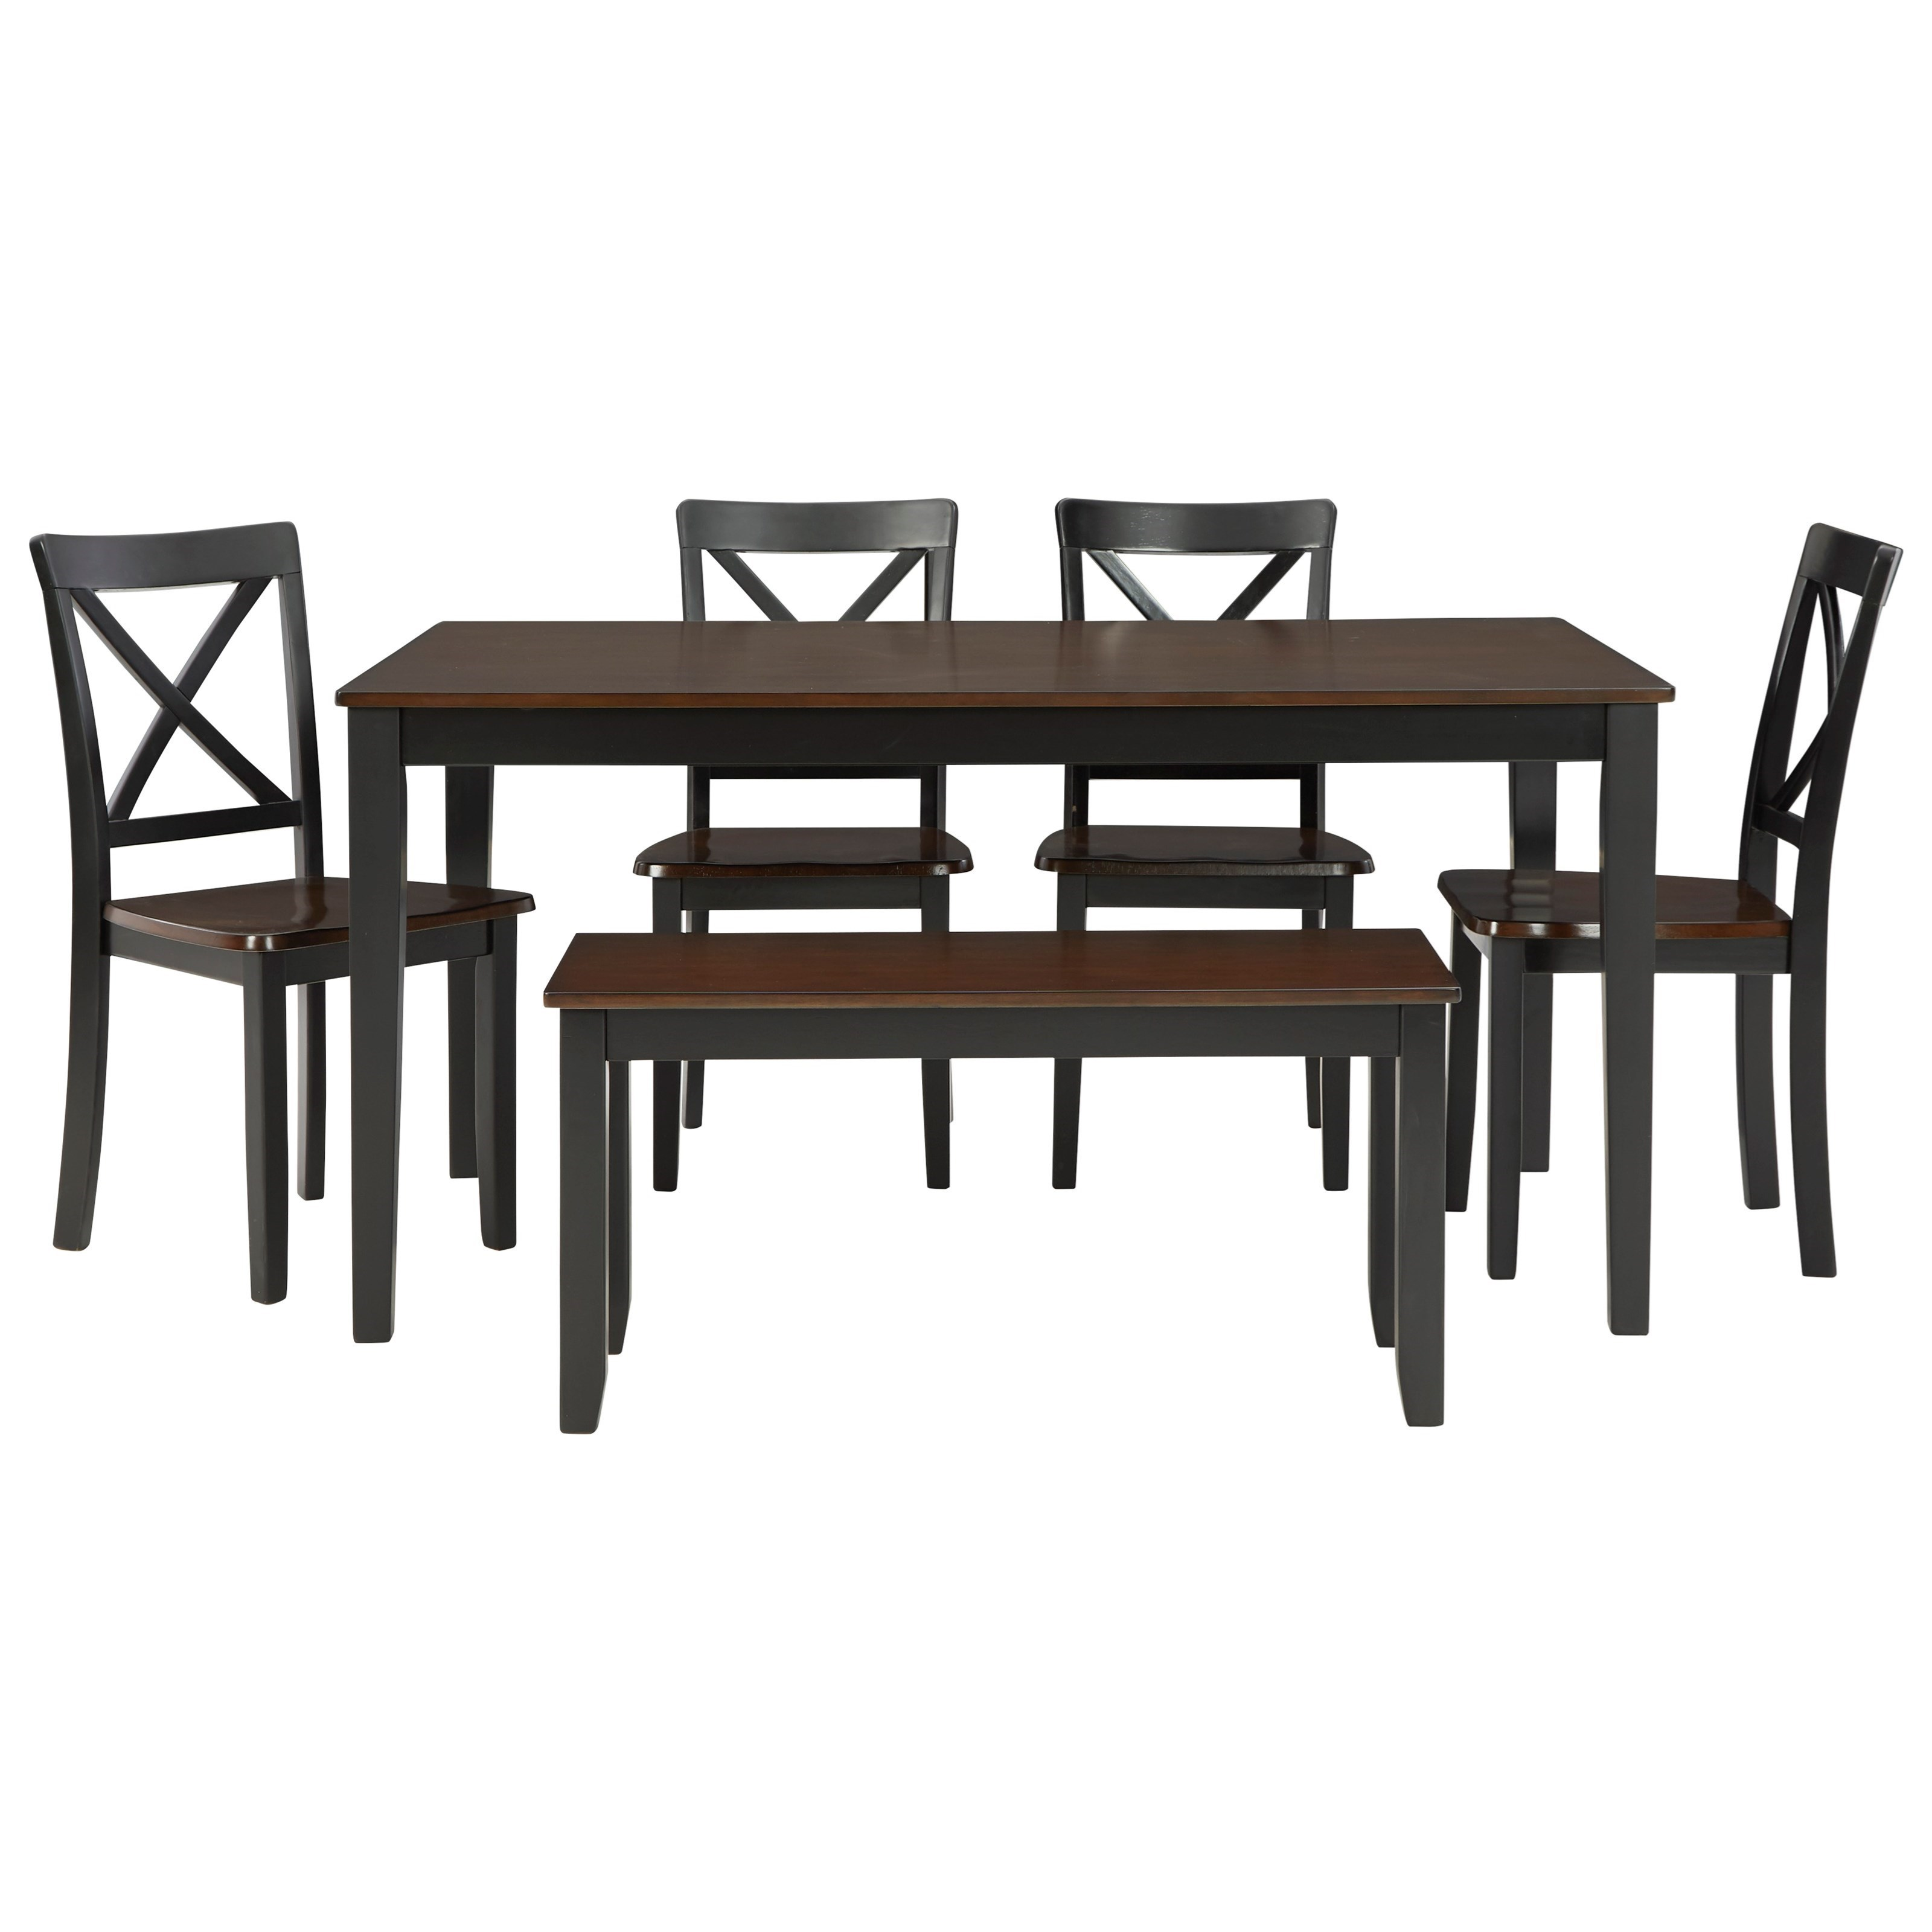 Larsondale 6-Piece Dining Table Set with Bench by Signature Design by Ashley at Northeast Factory Direct